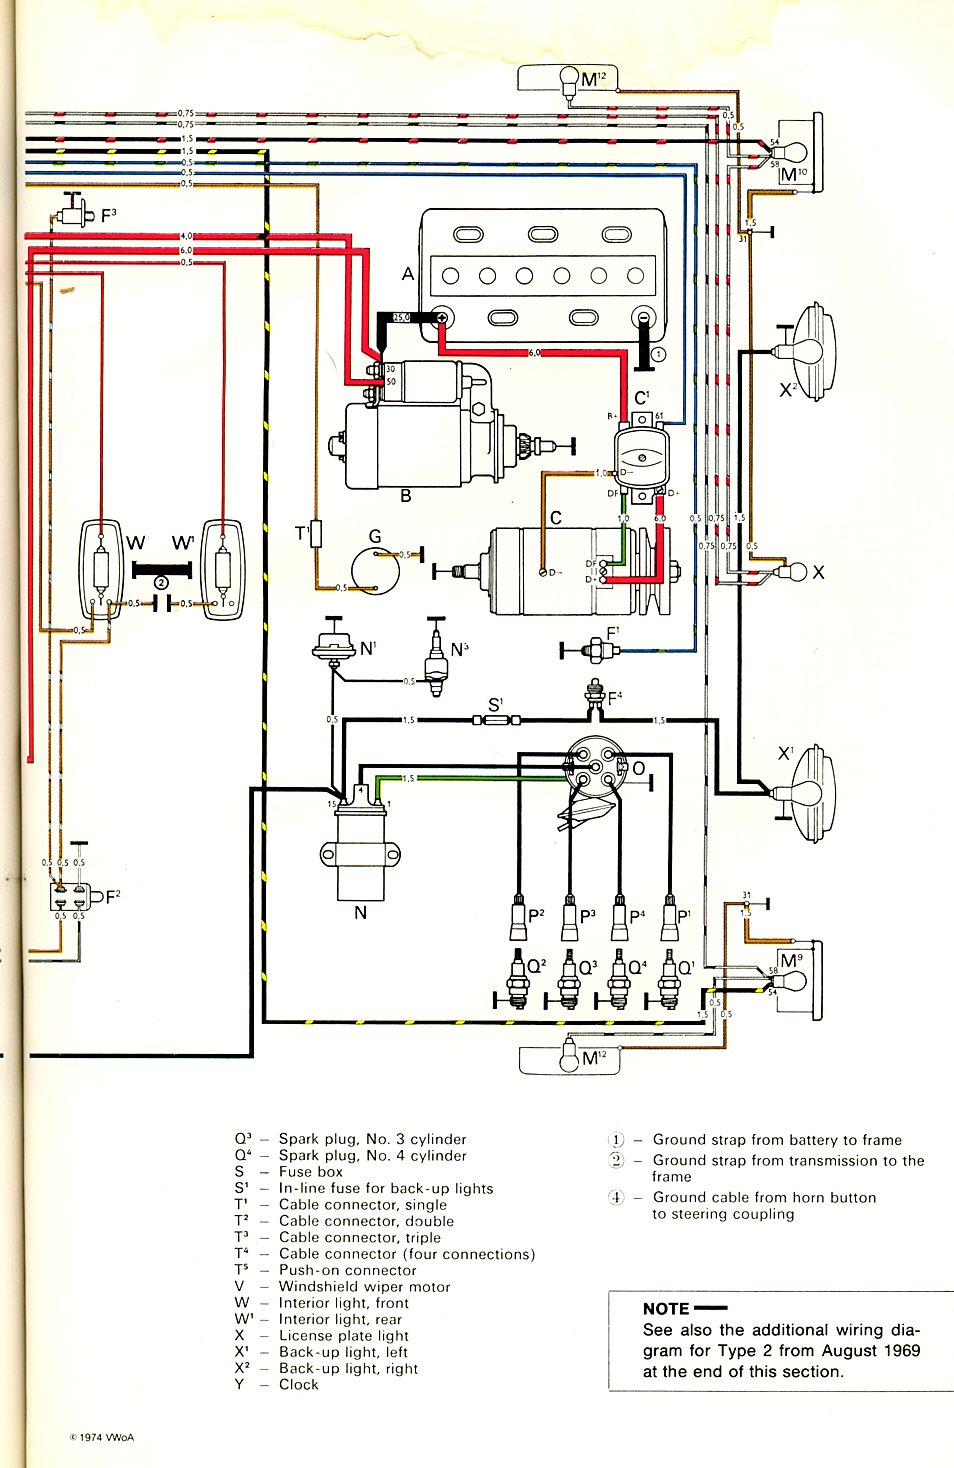 thesamba com type 2 wiring diagrams volkswagen transaxle diagram 72 volkswagen wiring diagram #19